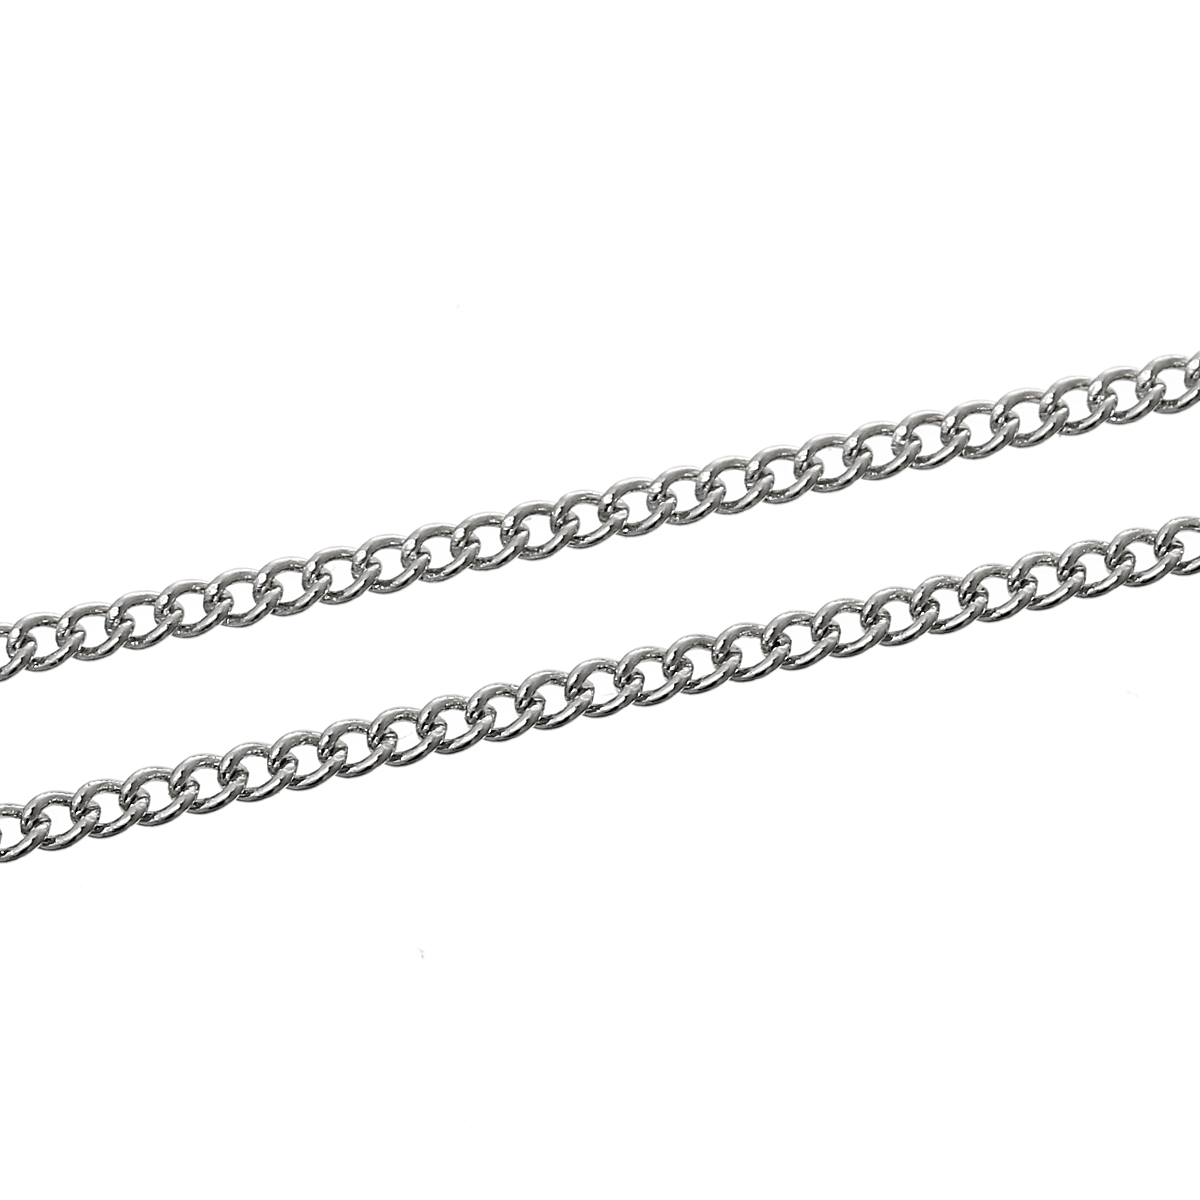 DoreenBeads Alloy Links Curb Chains Silver Tone 2mm X 1.5mm, 2 M 2015 New